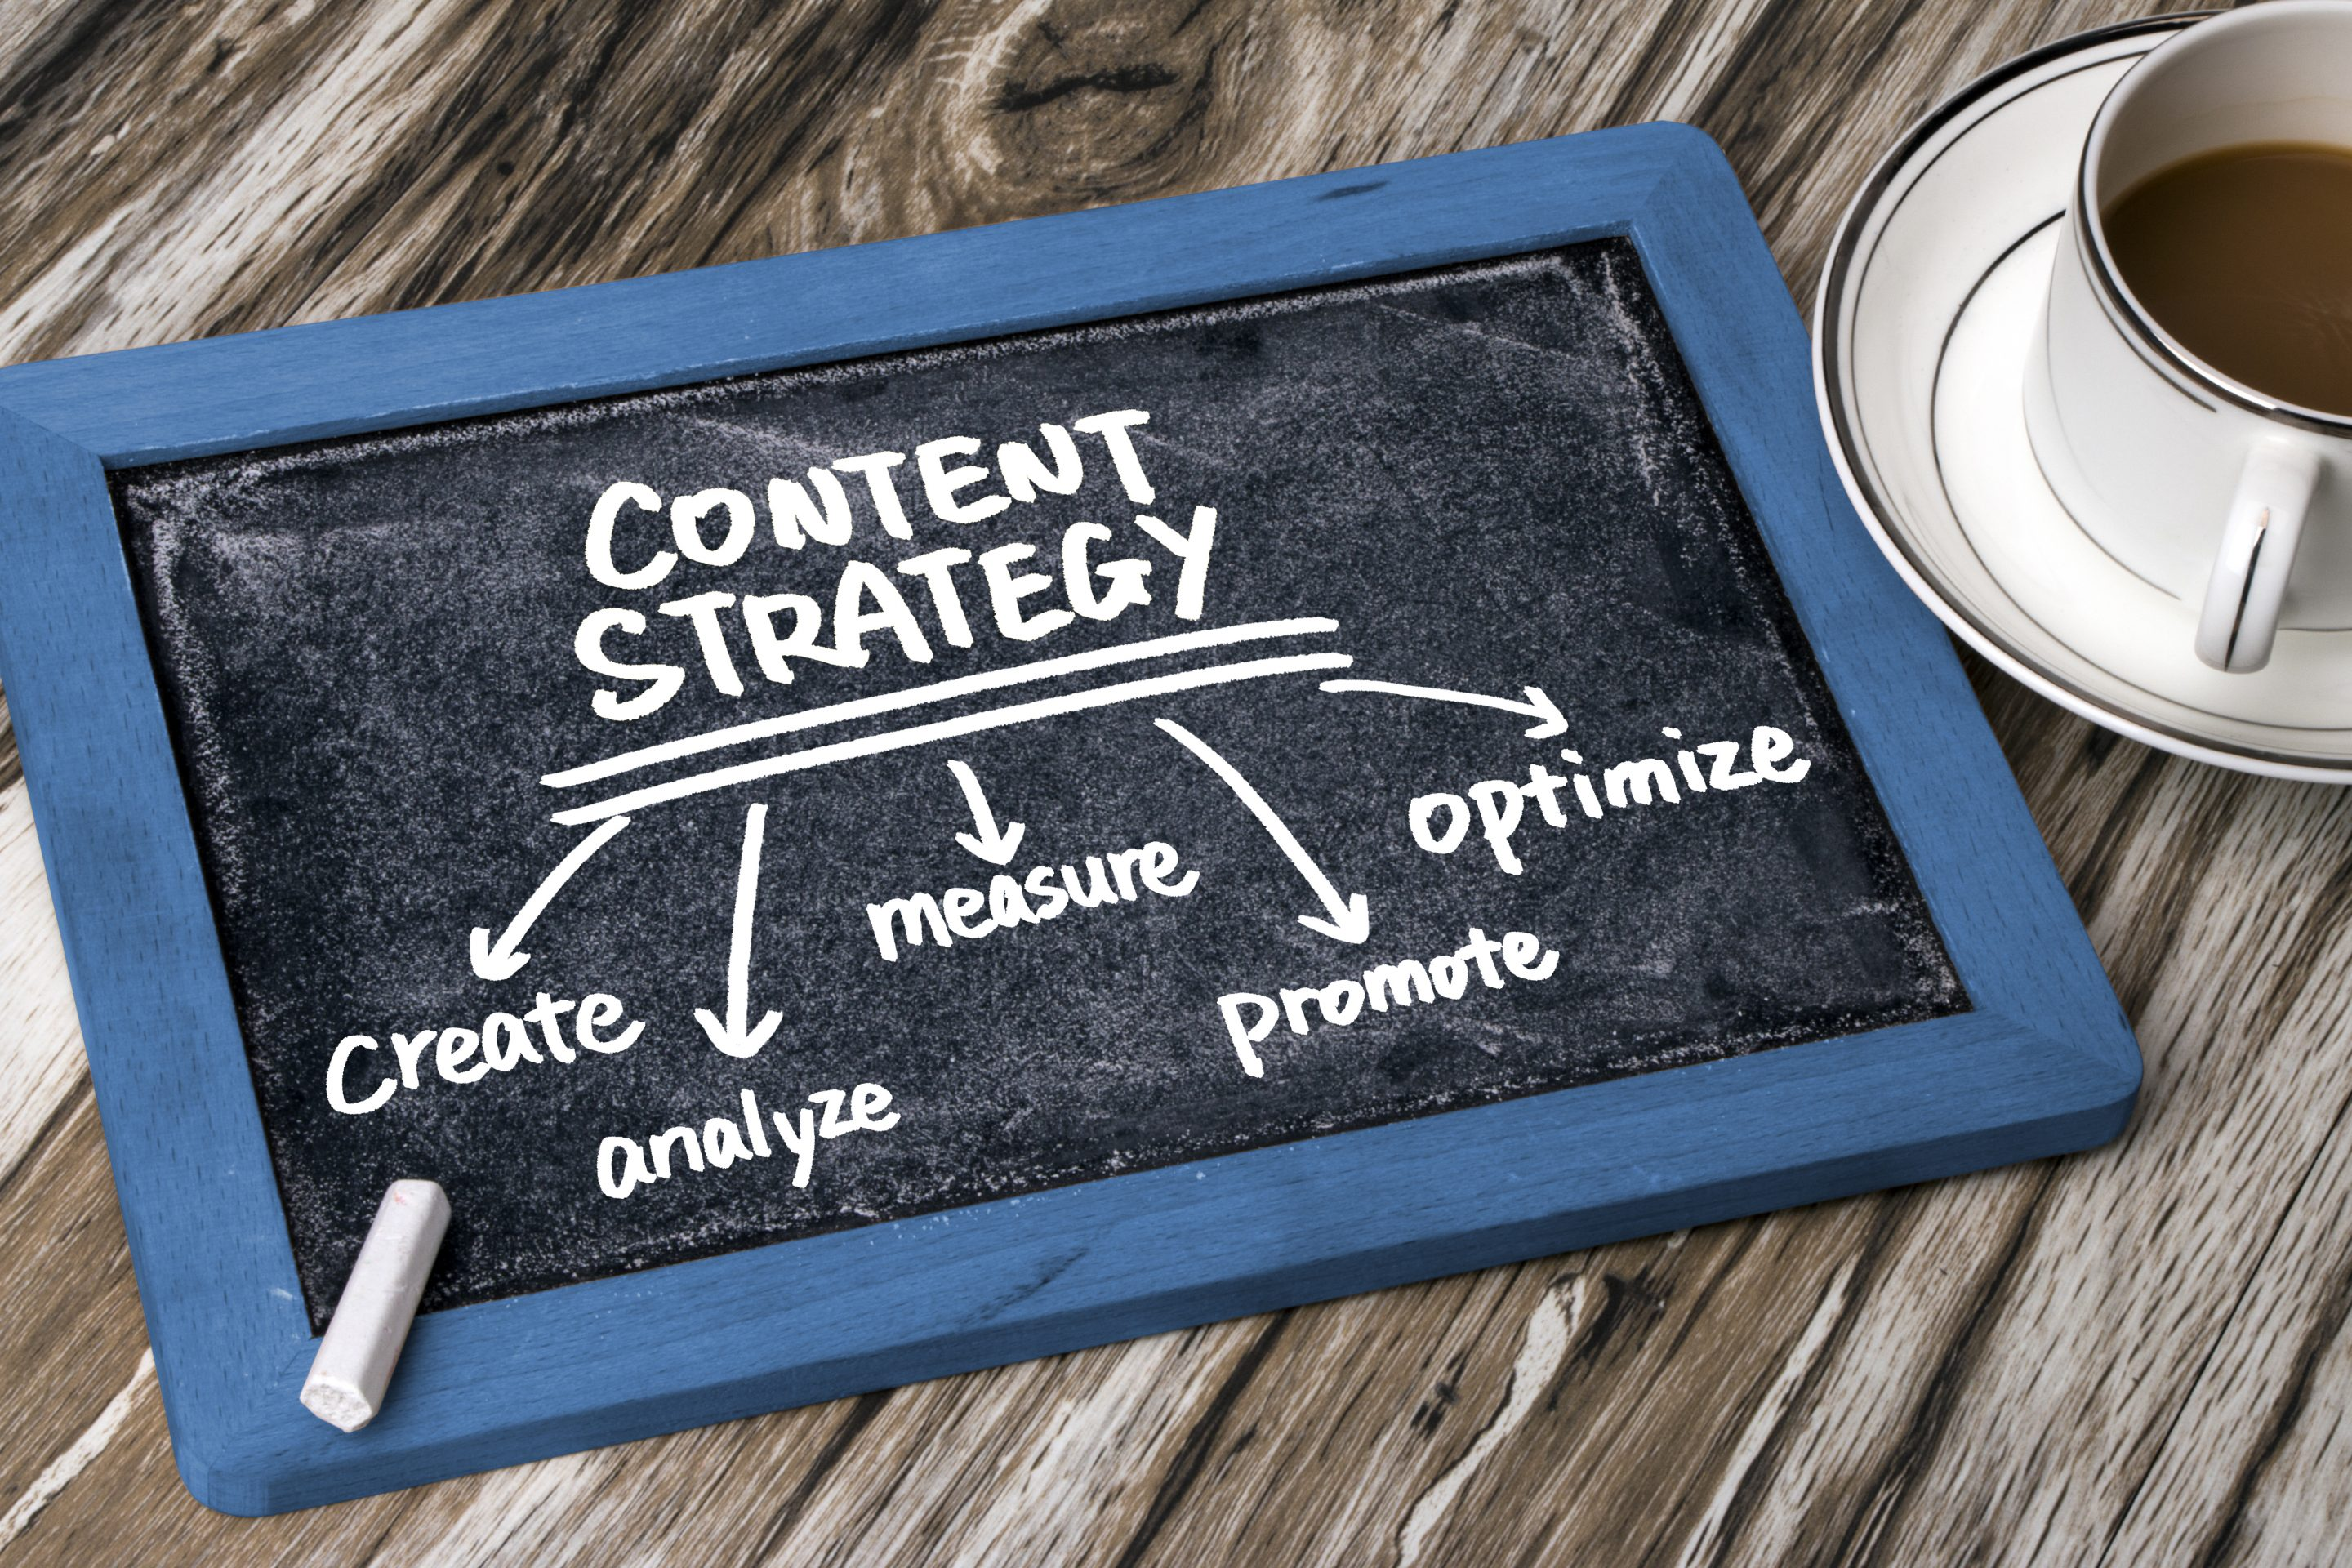 Video: How To Successfully Reach Your Audience With Content Marketing